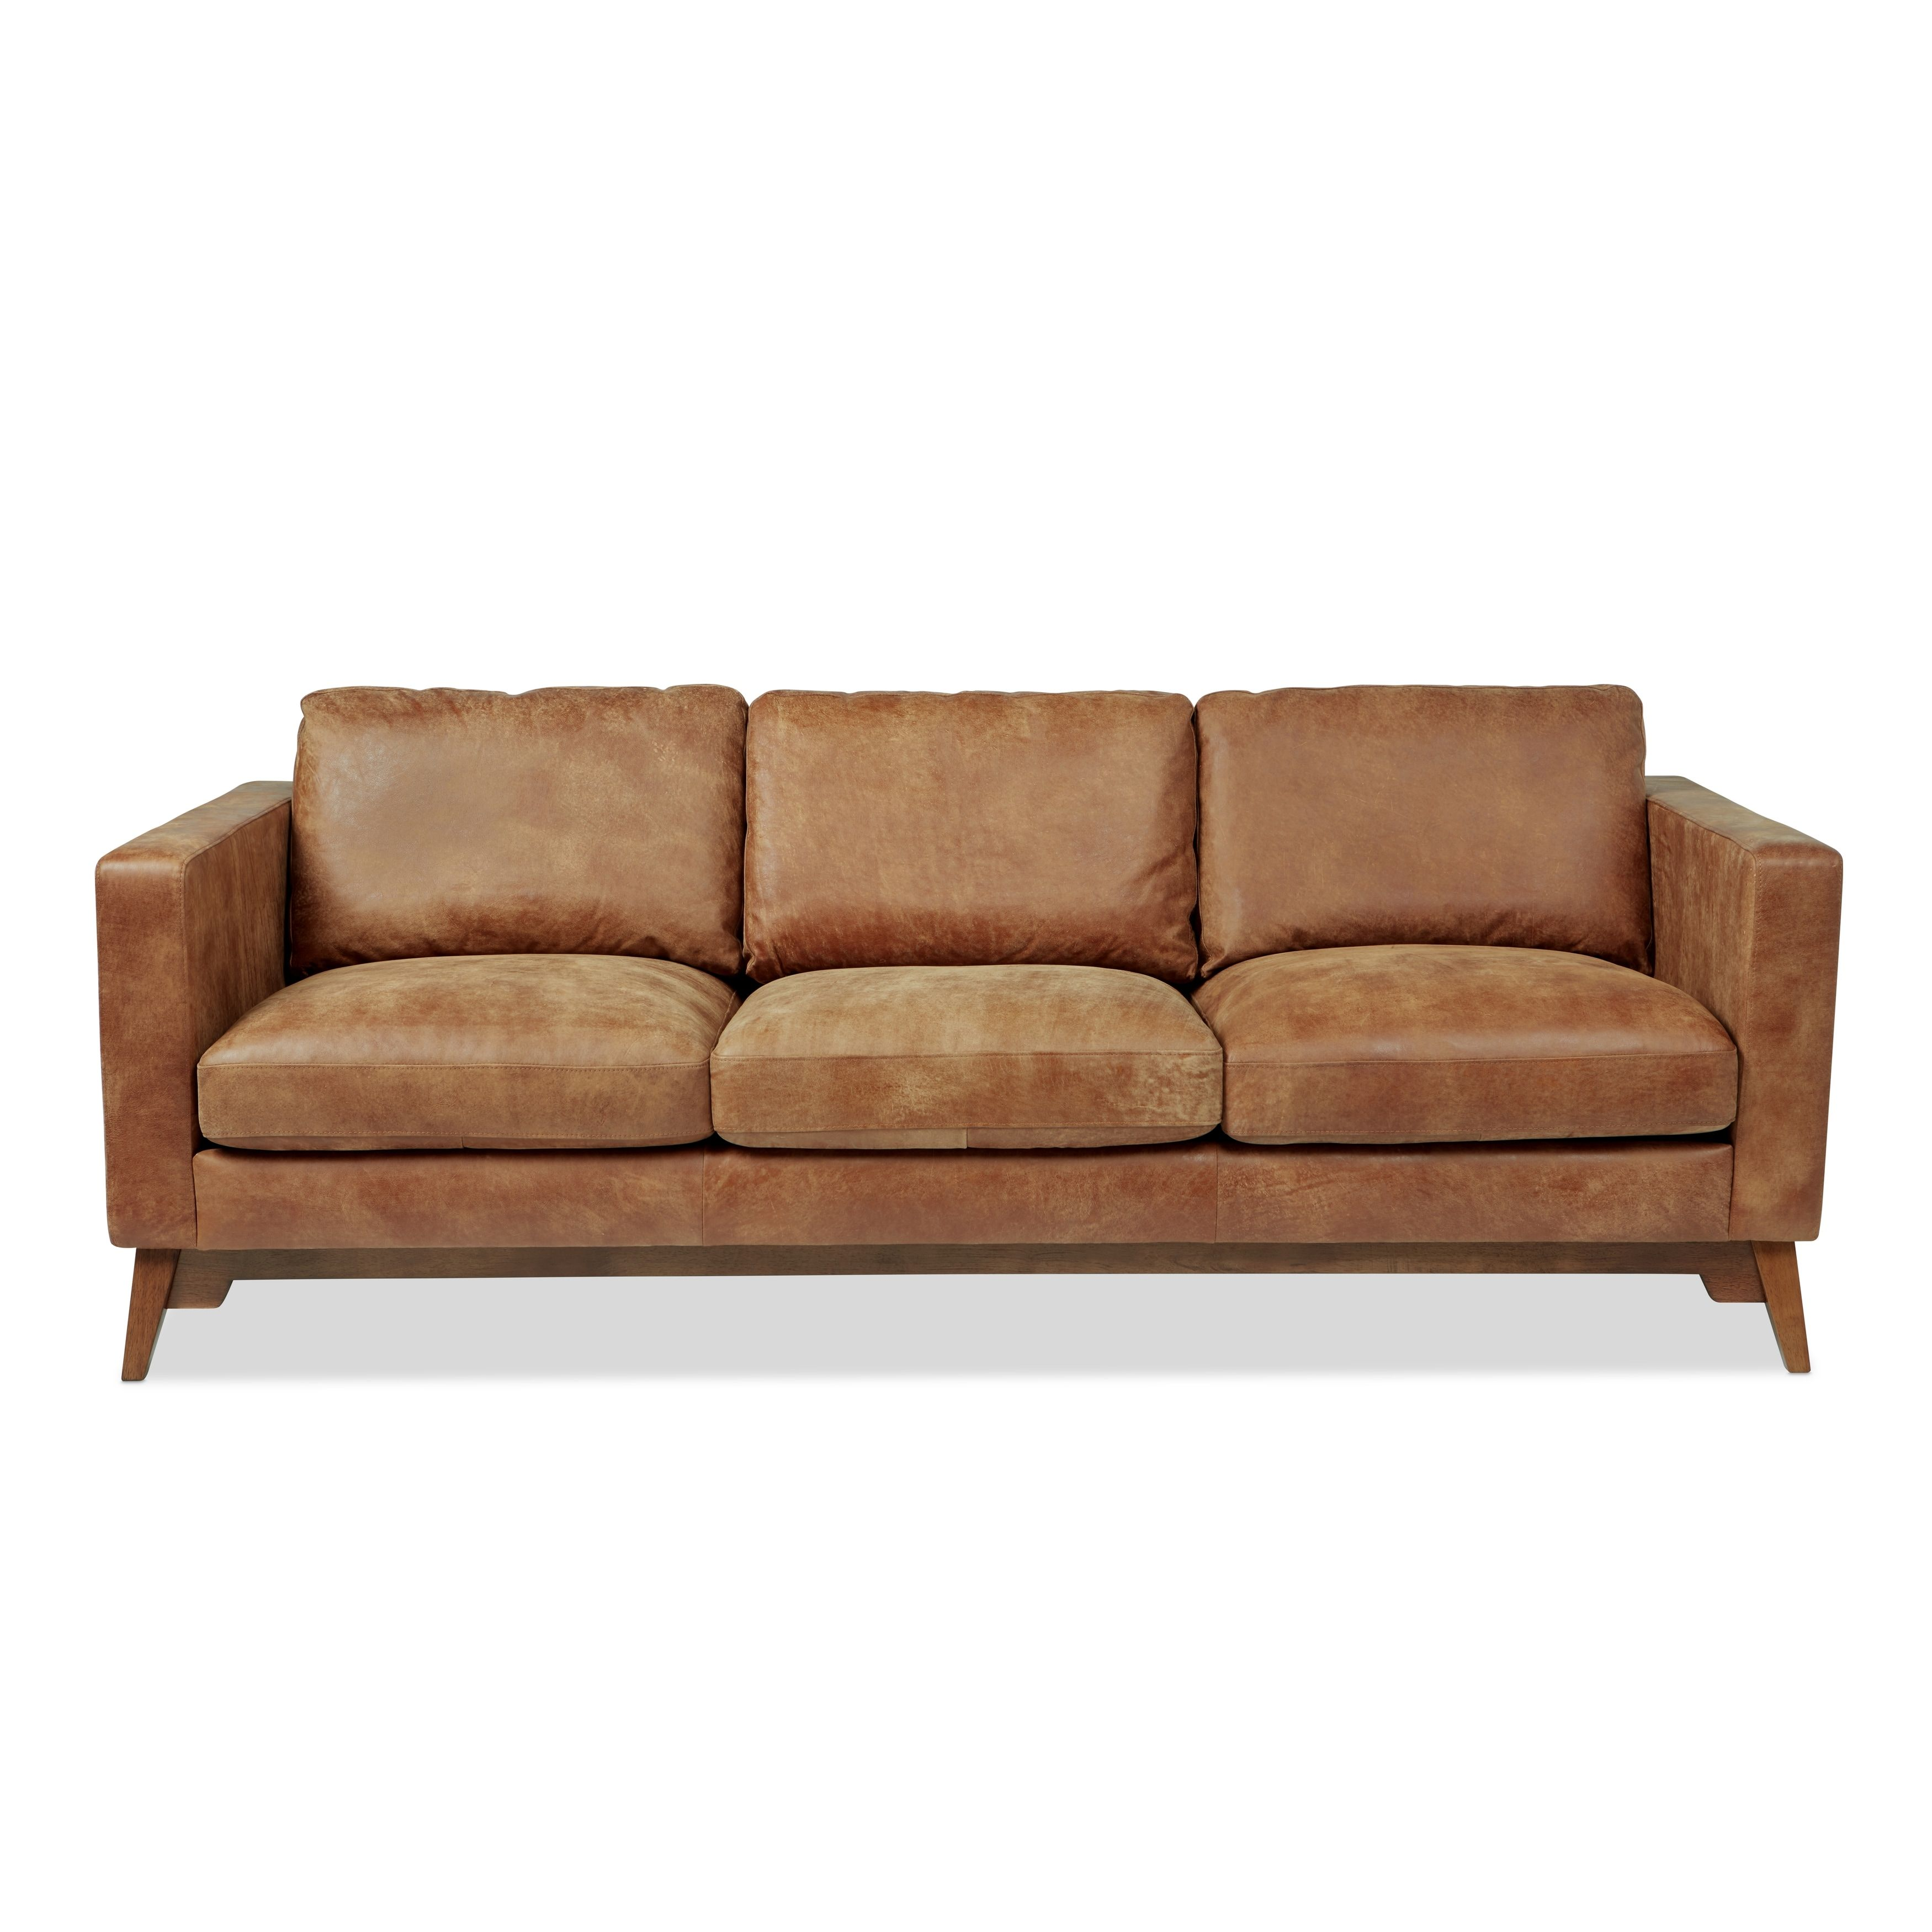 Online Shopping Bedding Furniture Electronics Jewelry Clothing More Tan Leather Sofas Leather Sofa Strick Bolton